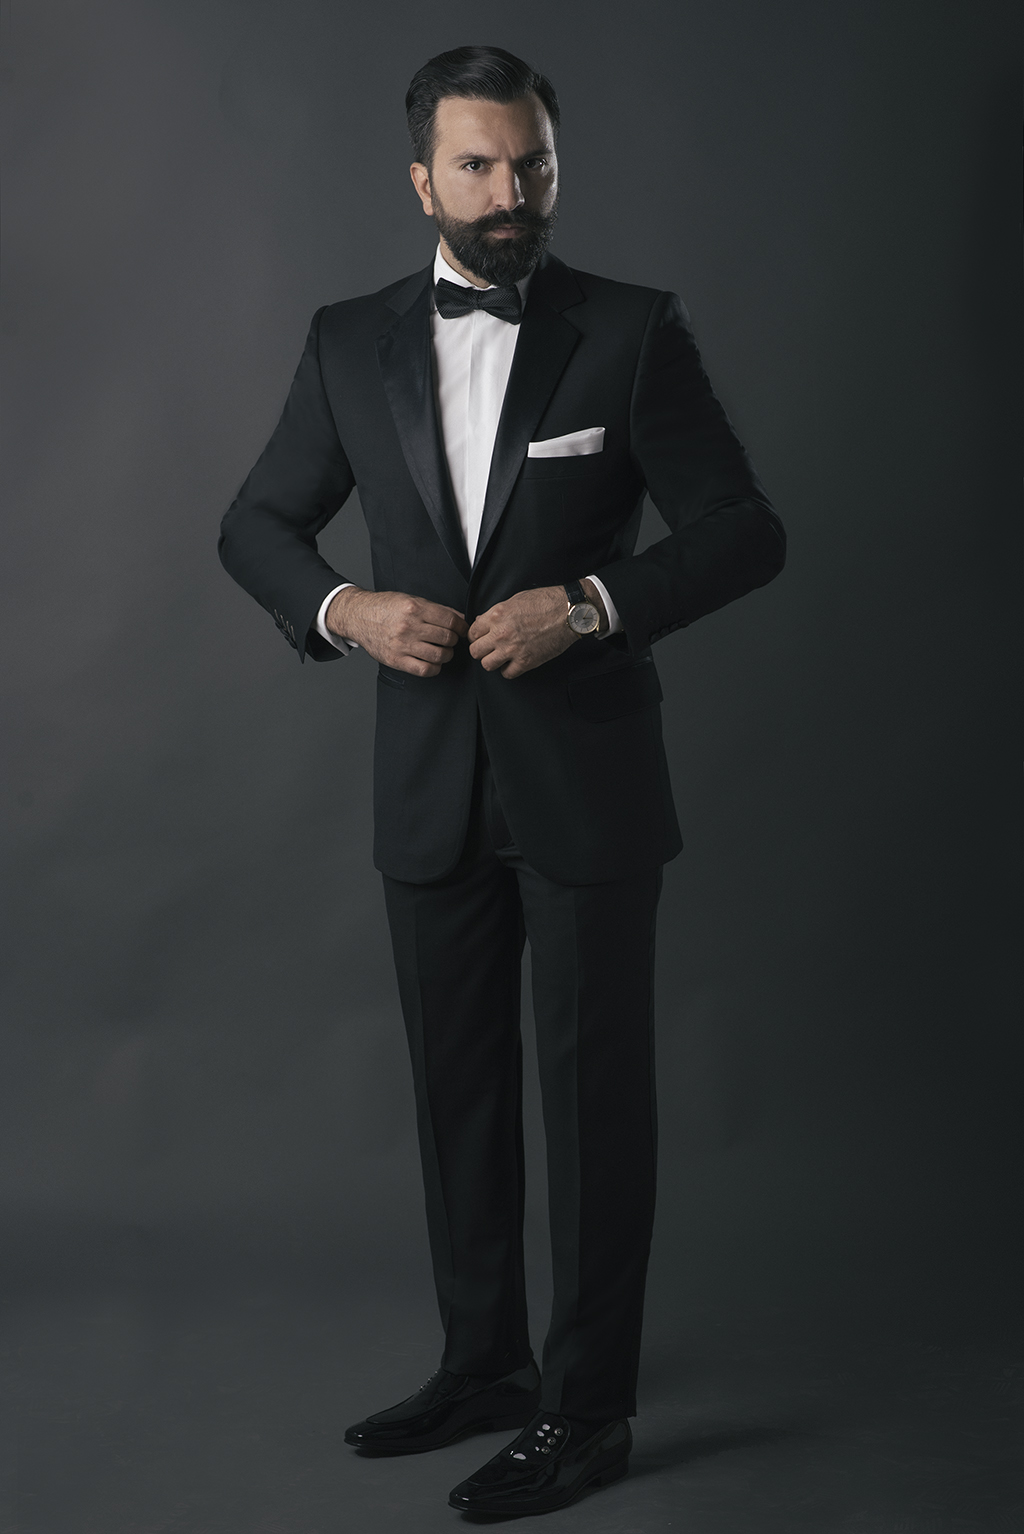 groom_suit-2